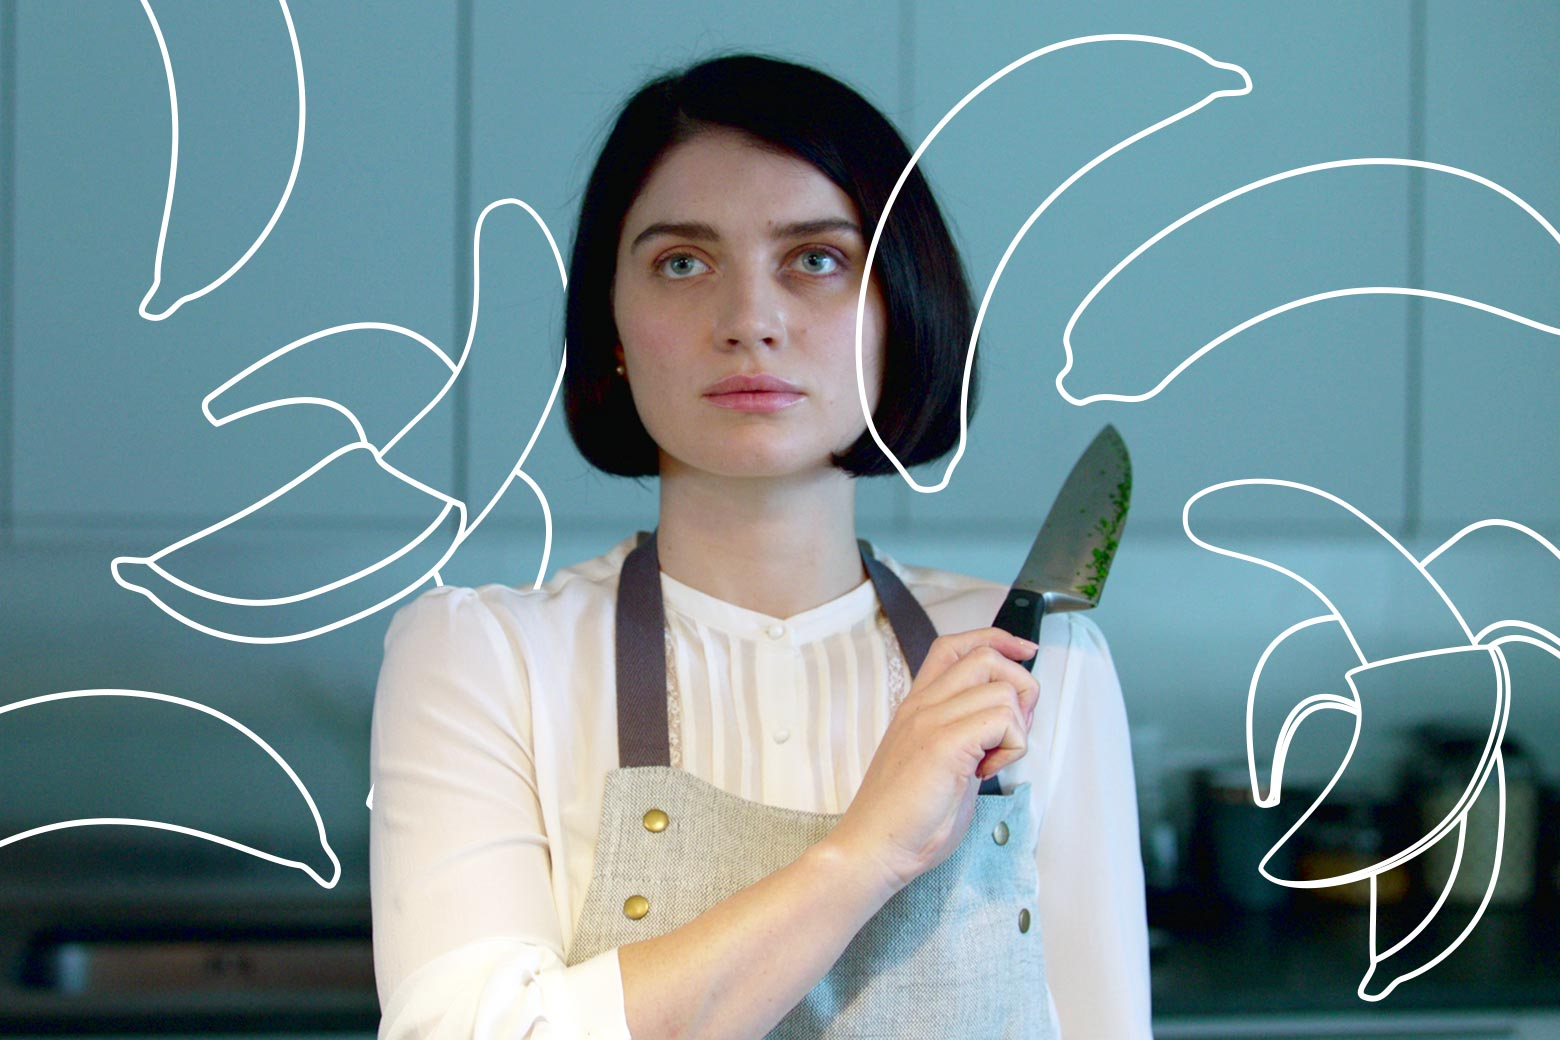 A woman stares blankly, a chef's knife in the air, illustrations of half-sliced bananas floating around her.